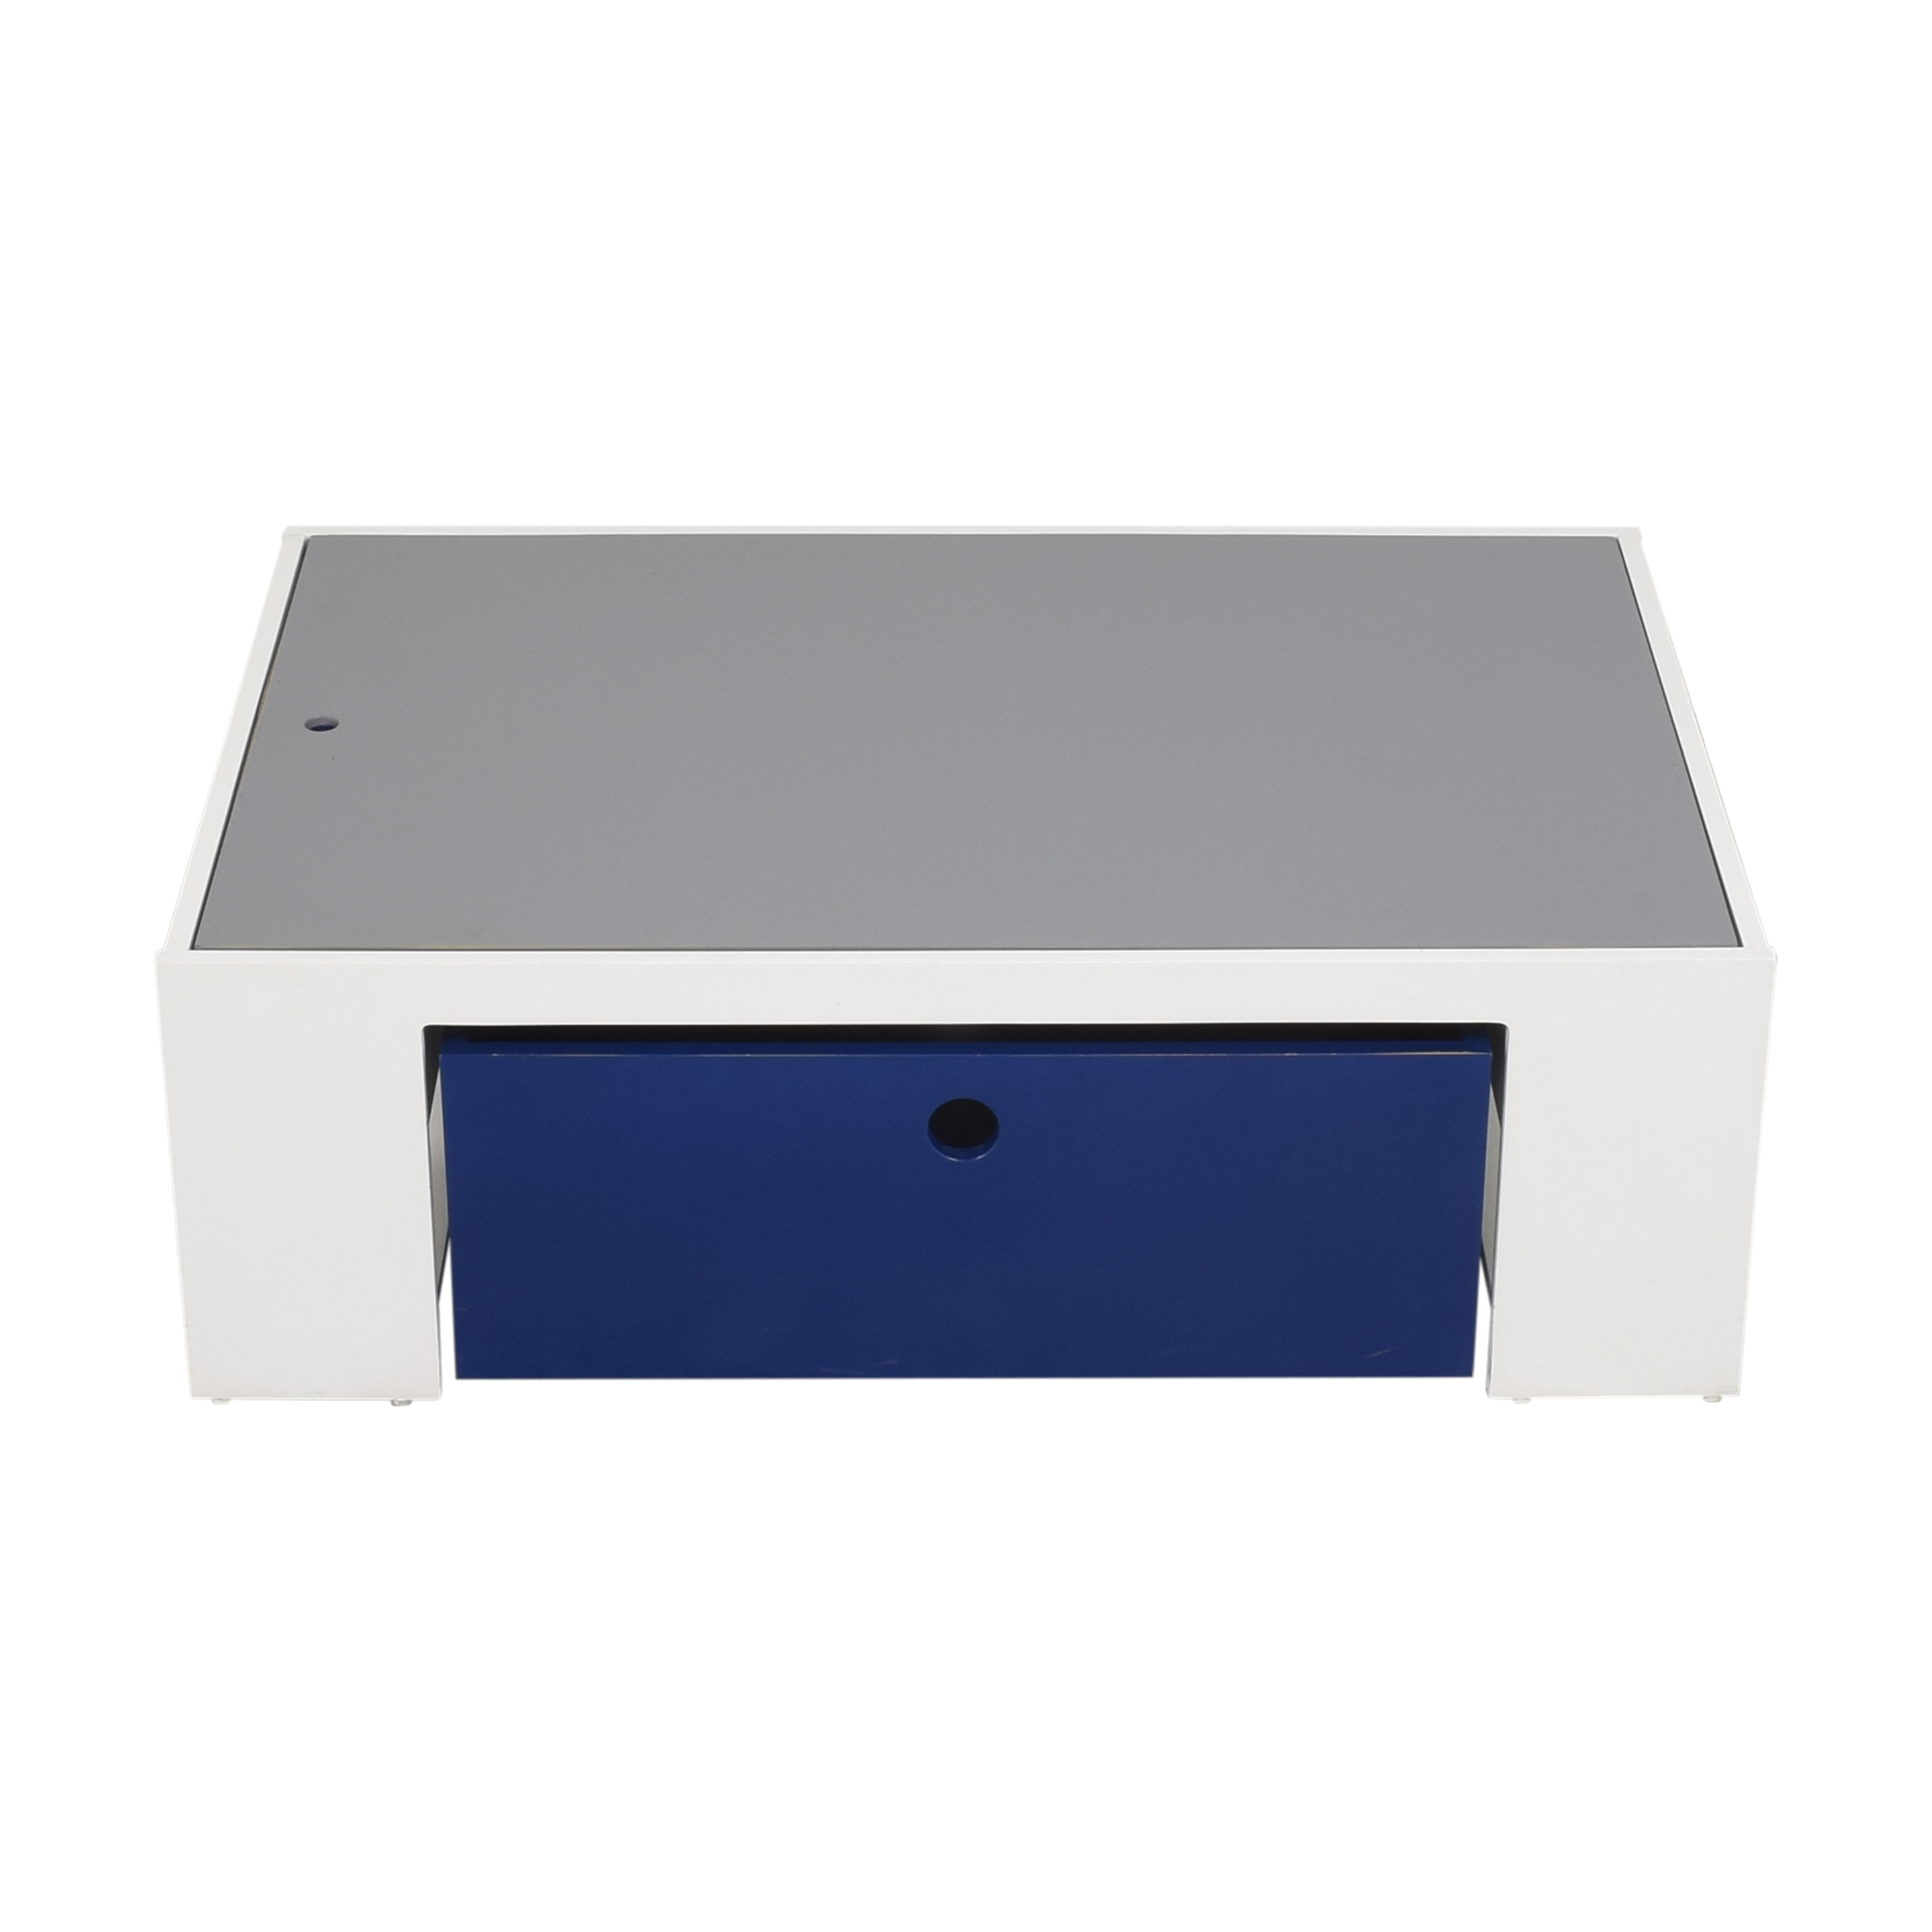 buy ducduc Parker Playtable  ducduc Utility Tables